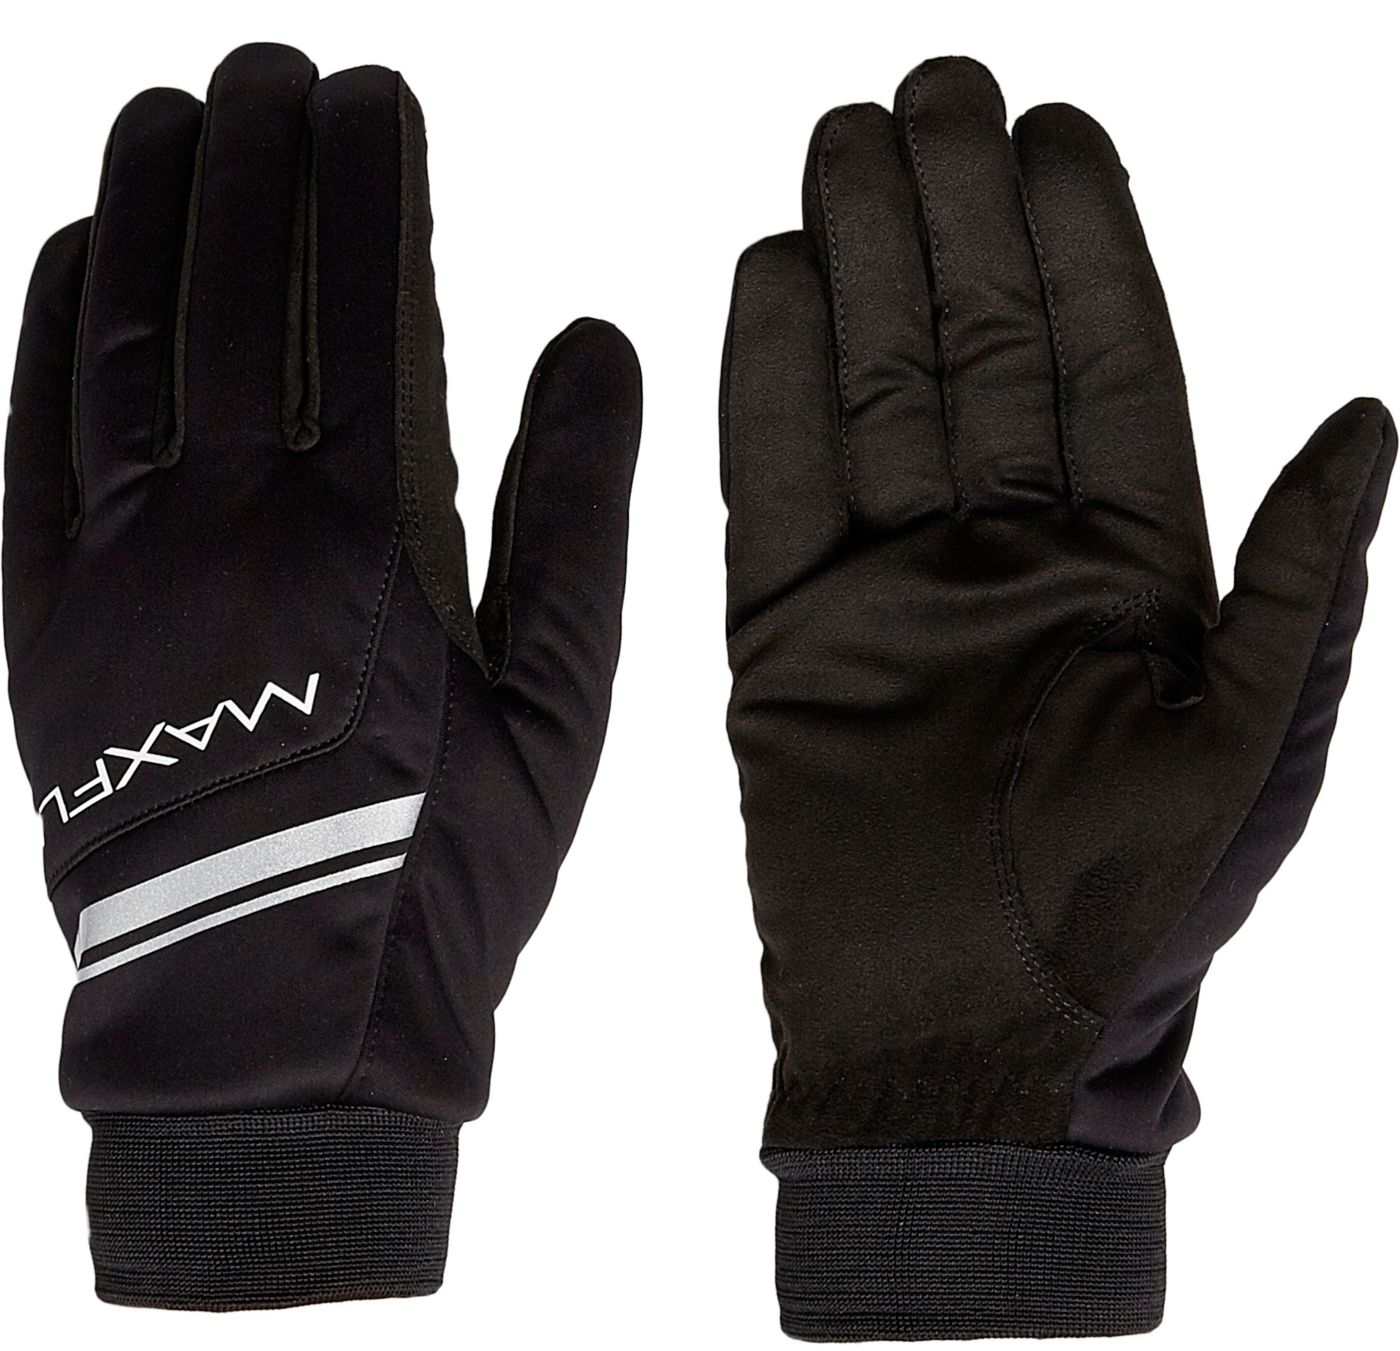 2019 Maxfli Winter Golf Gloves